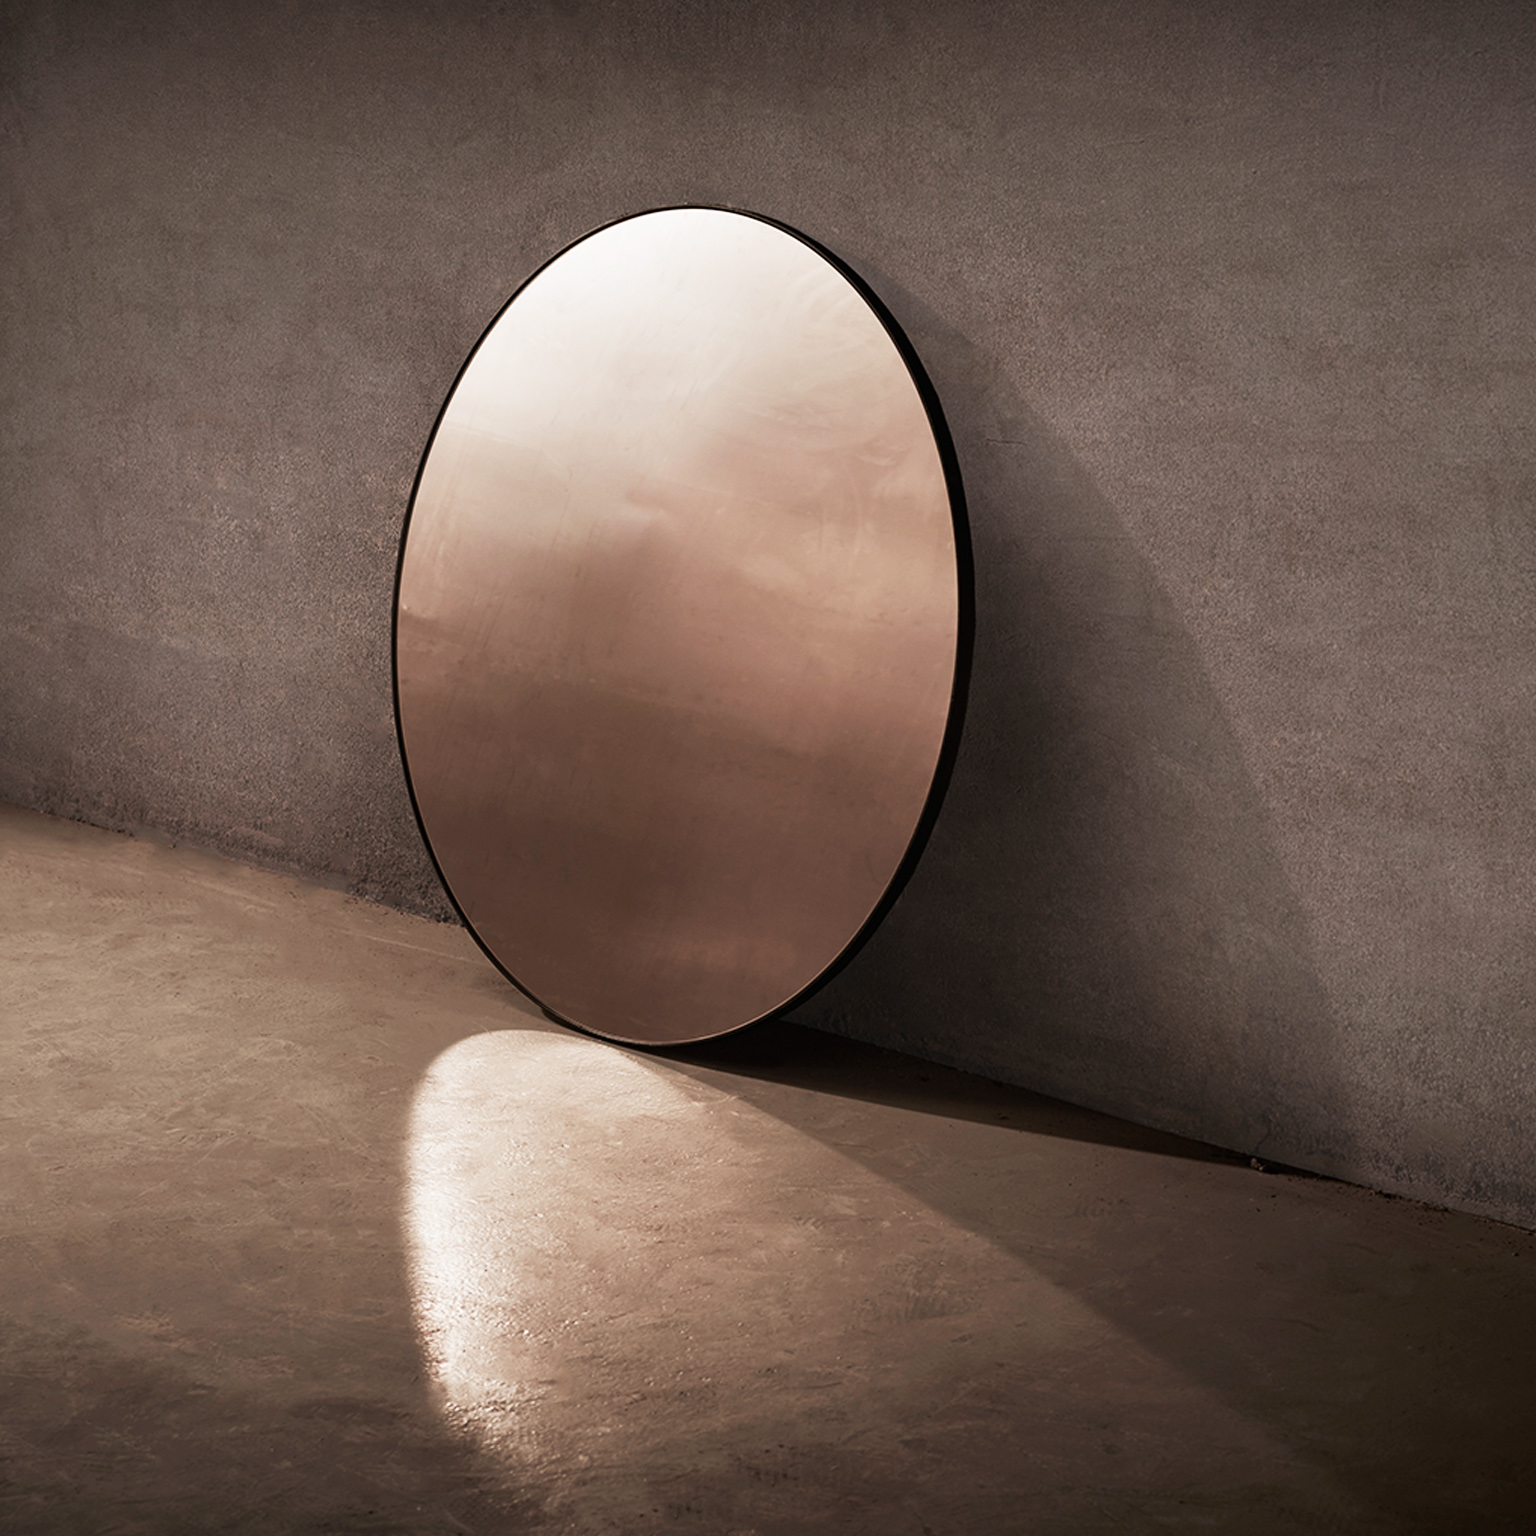 Port Round Mirror - The Port Round Mirror is a minimal, circular wall mirror in blackened steel. Ideal for adding a modern touch to kitchens and living rooms. It has been hand crafted and is made to order in the North of England. Custom sizes and finishes are available. Please enquire for more information.  | Matter of Stuff